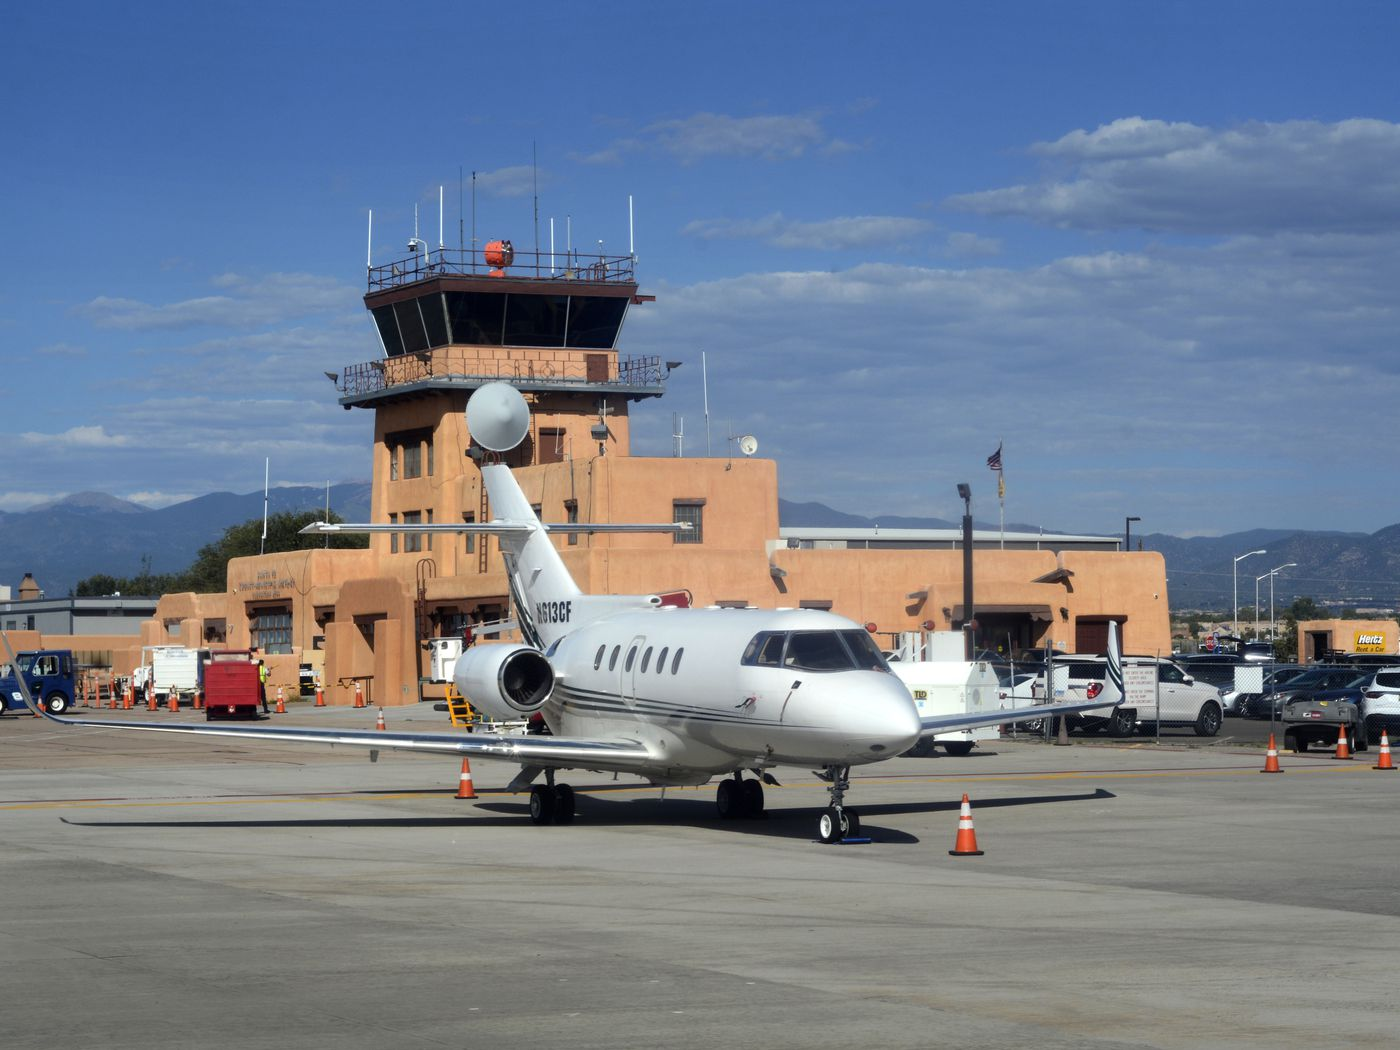 Regional airports provide air service and stimulate small-city